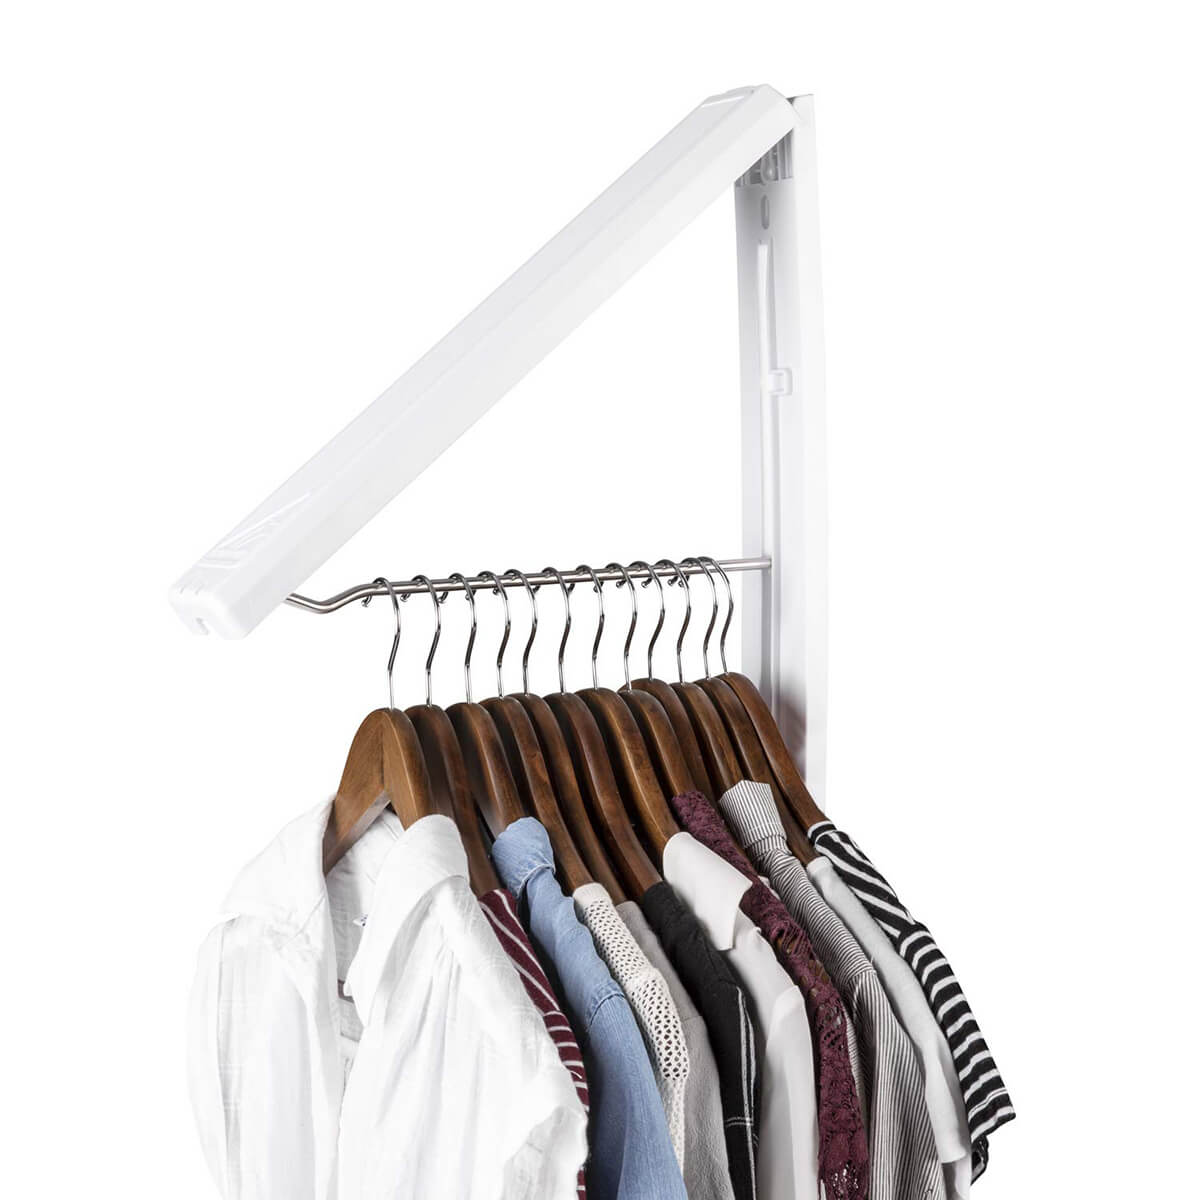 Unique and Innovative Space-Saving Hanger